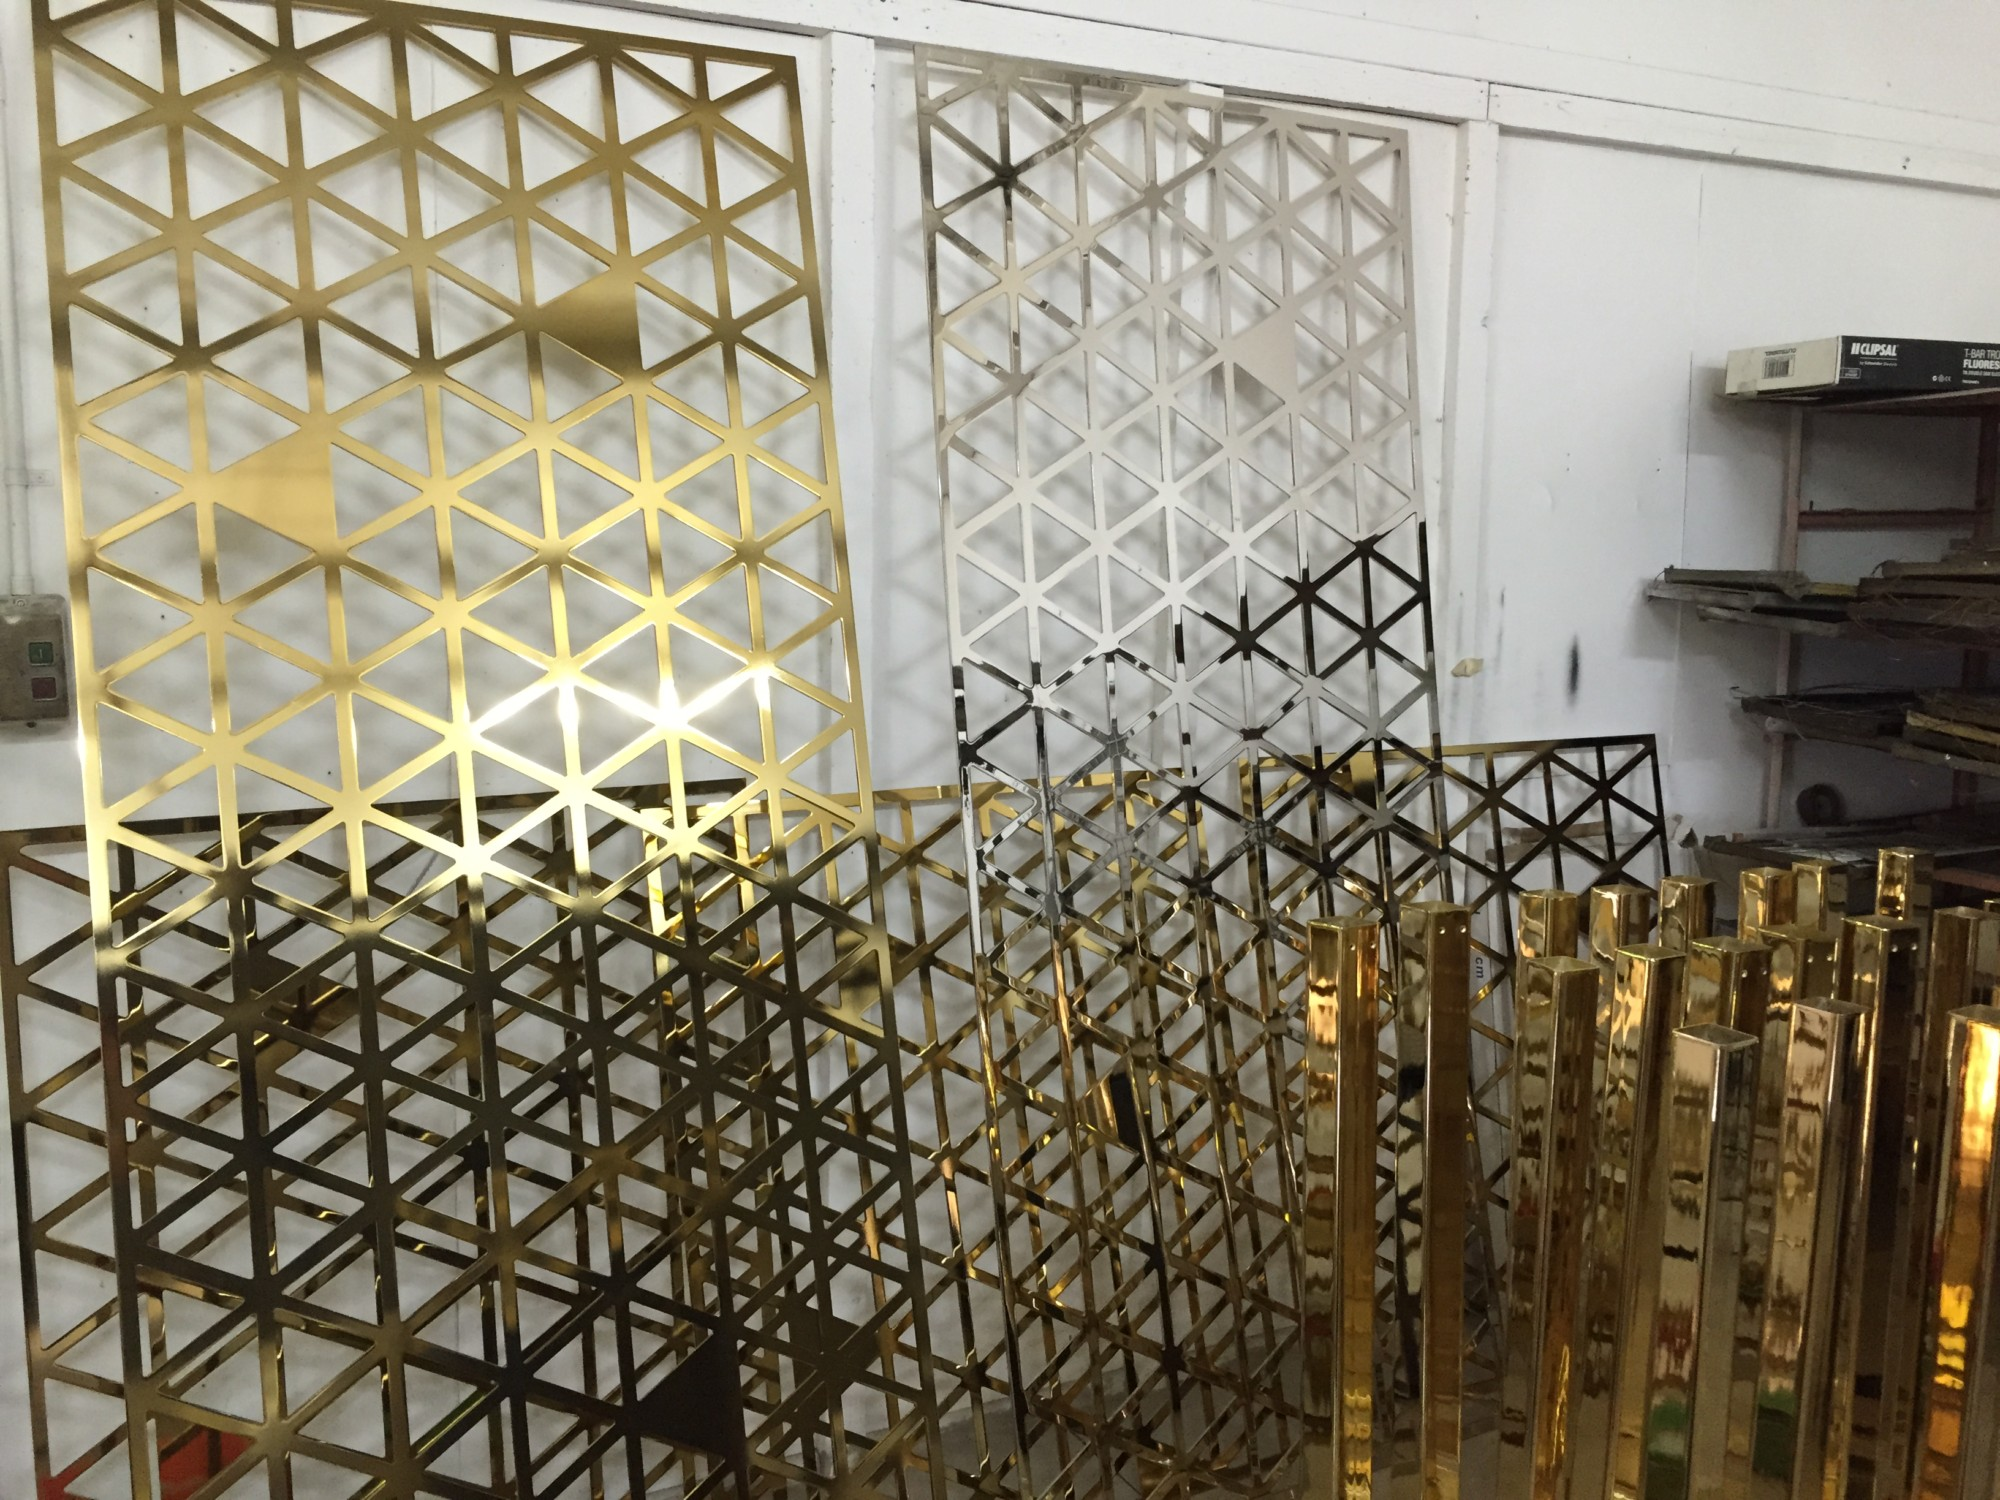 Brass and Nickel plated mirror polished lasercut 5mm aluminium screens